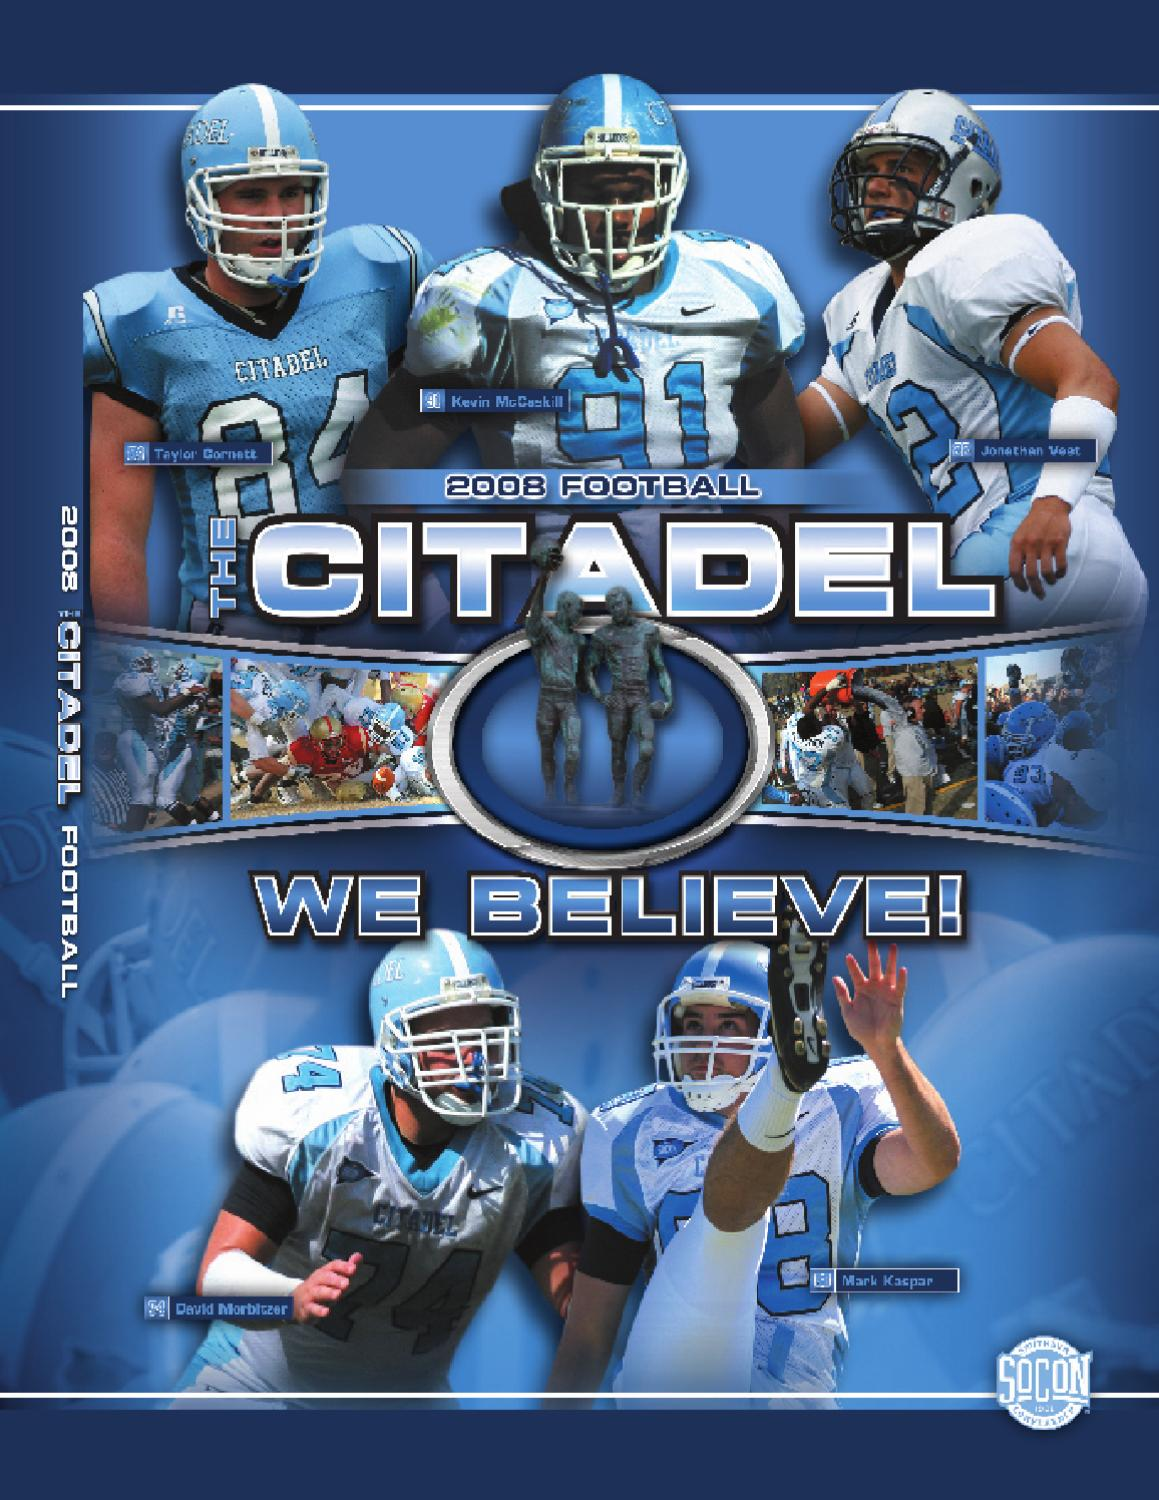 2008 Citadel Football Media Guide by Jon Cole issuu  supplier